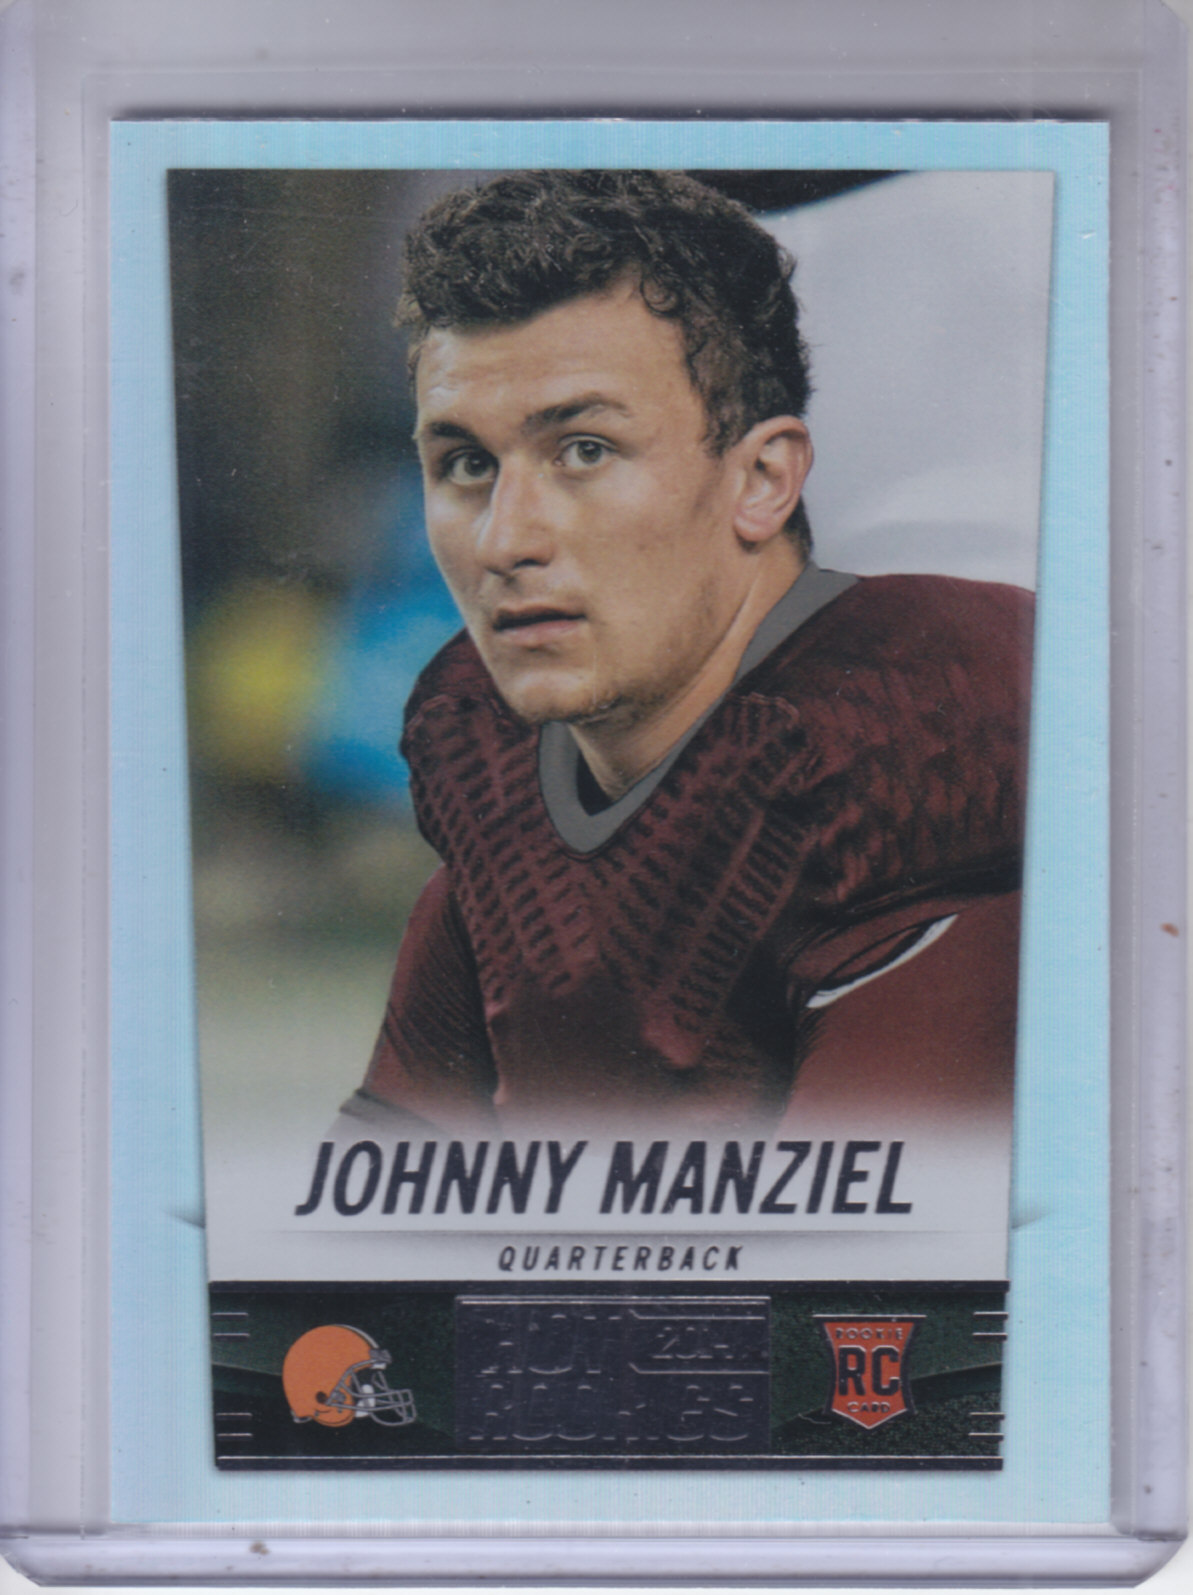 2014 Panini Hot Rookies #387 Johnny Manziel RC